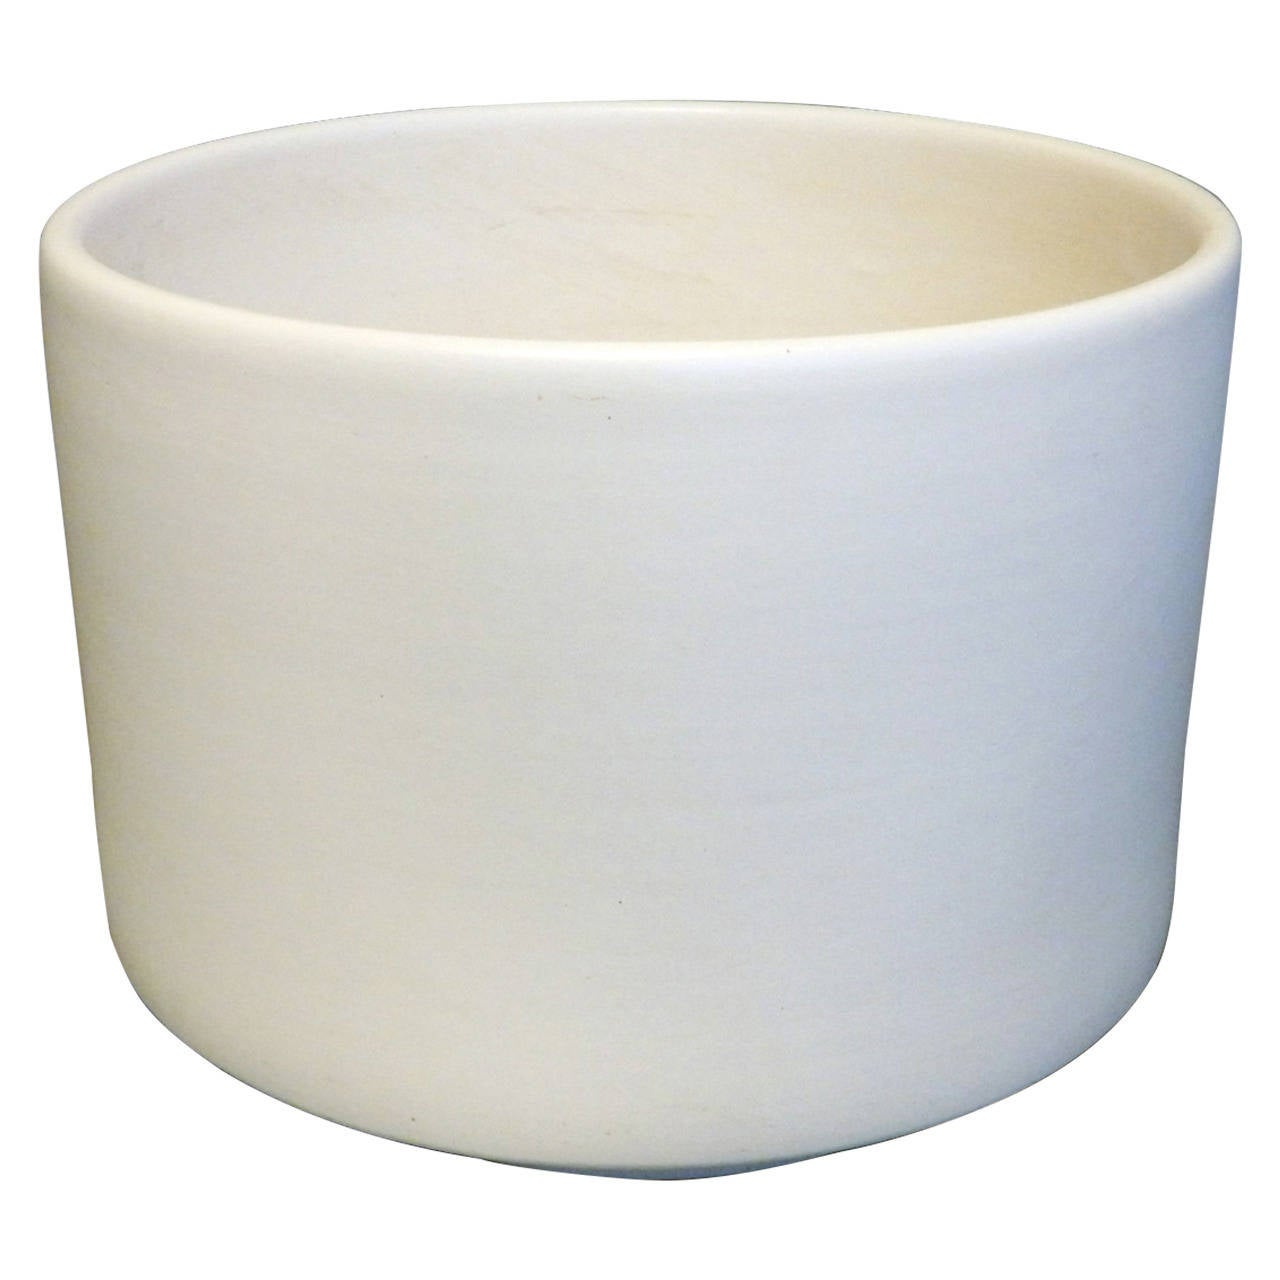 Small White Ceramic Planters Large Matte White Planter Pot In The Style Of